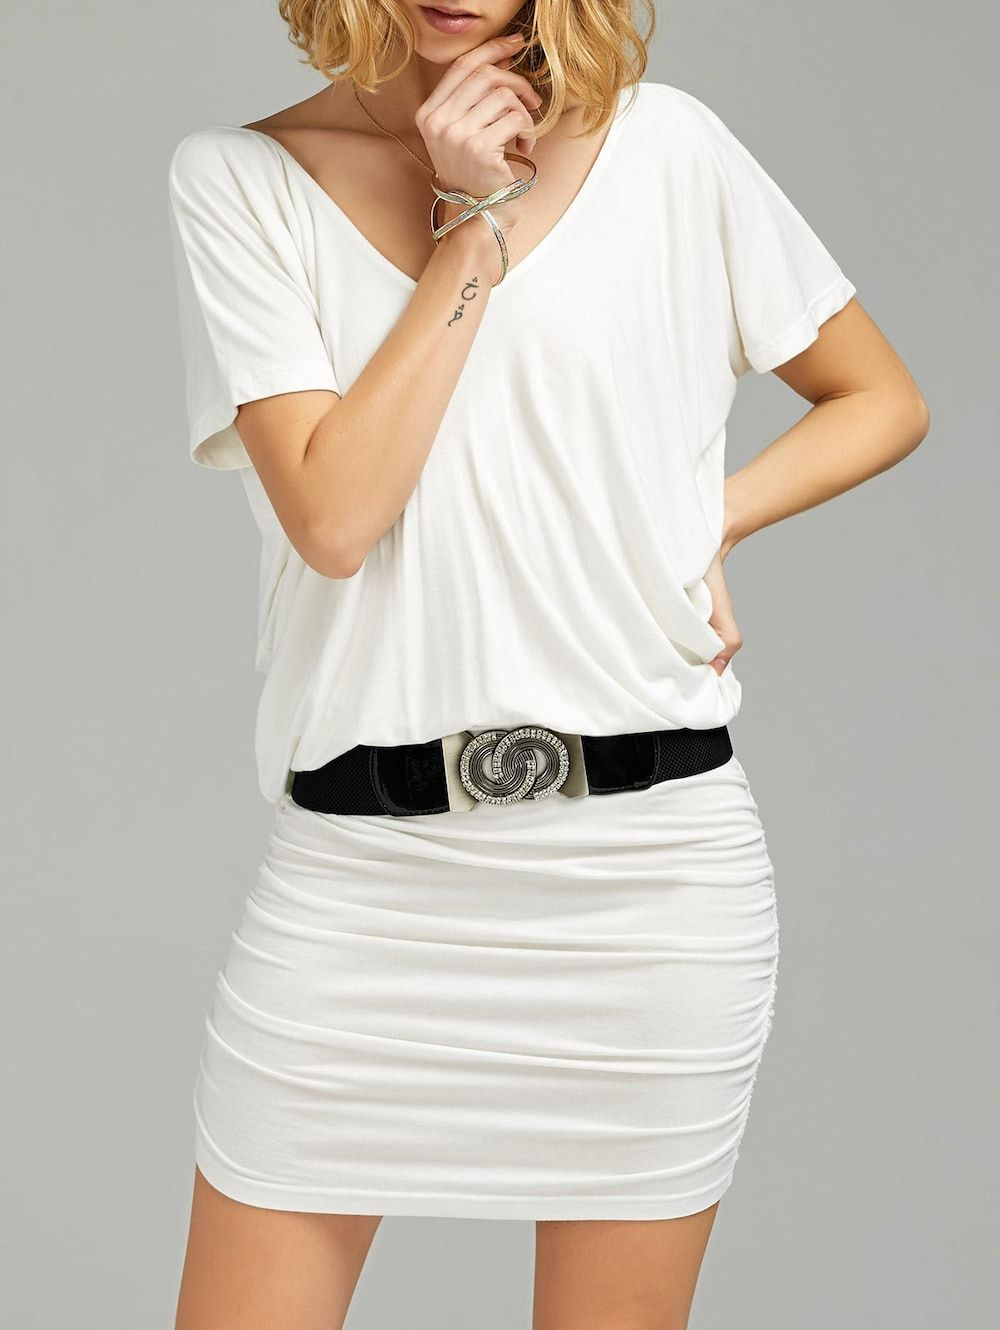 V neck ruched tshirt dress with belt